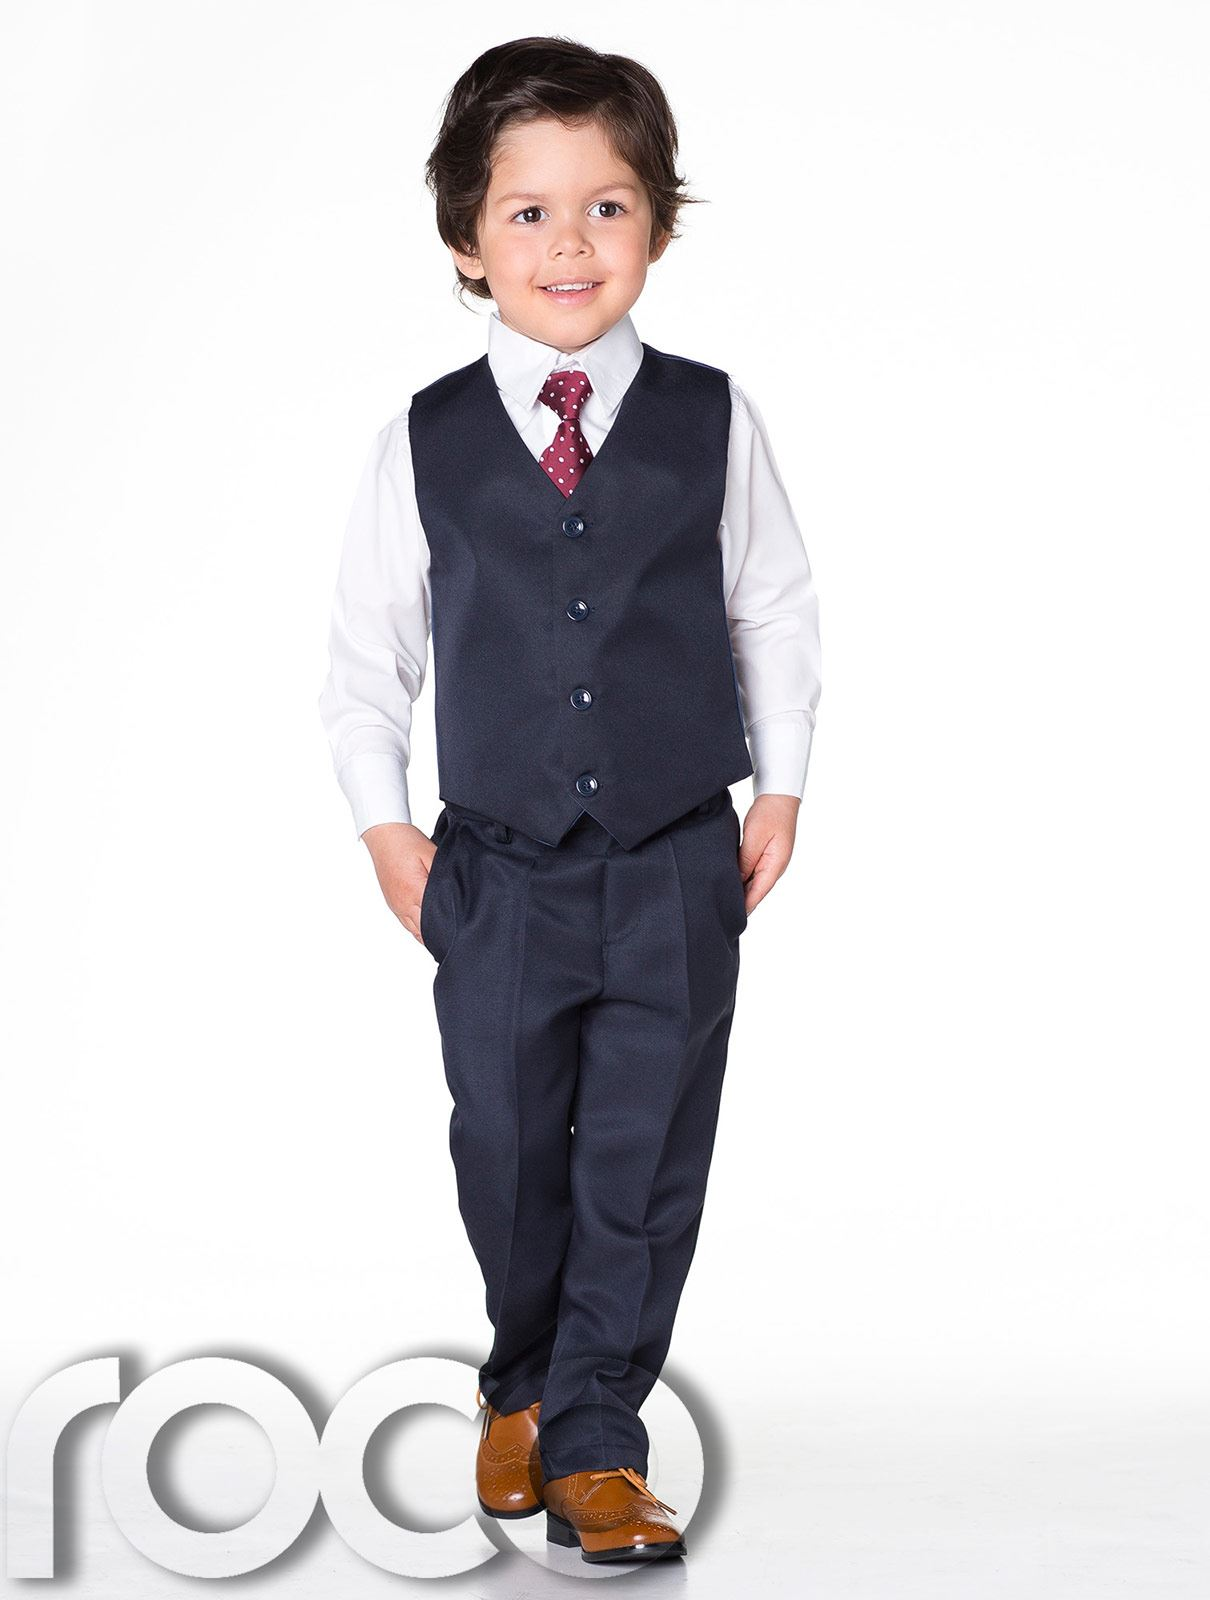 Page-Boy-Suits-Boys-Waistcoat-Suit-Boys-suits-Navy-Suit-Grey-Suit-Blue-Suit thumbnail 11